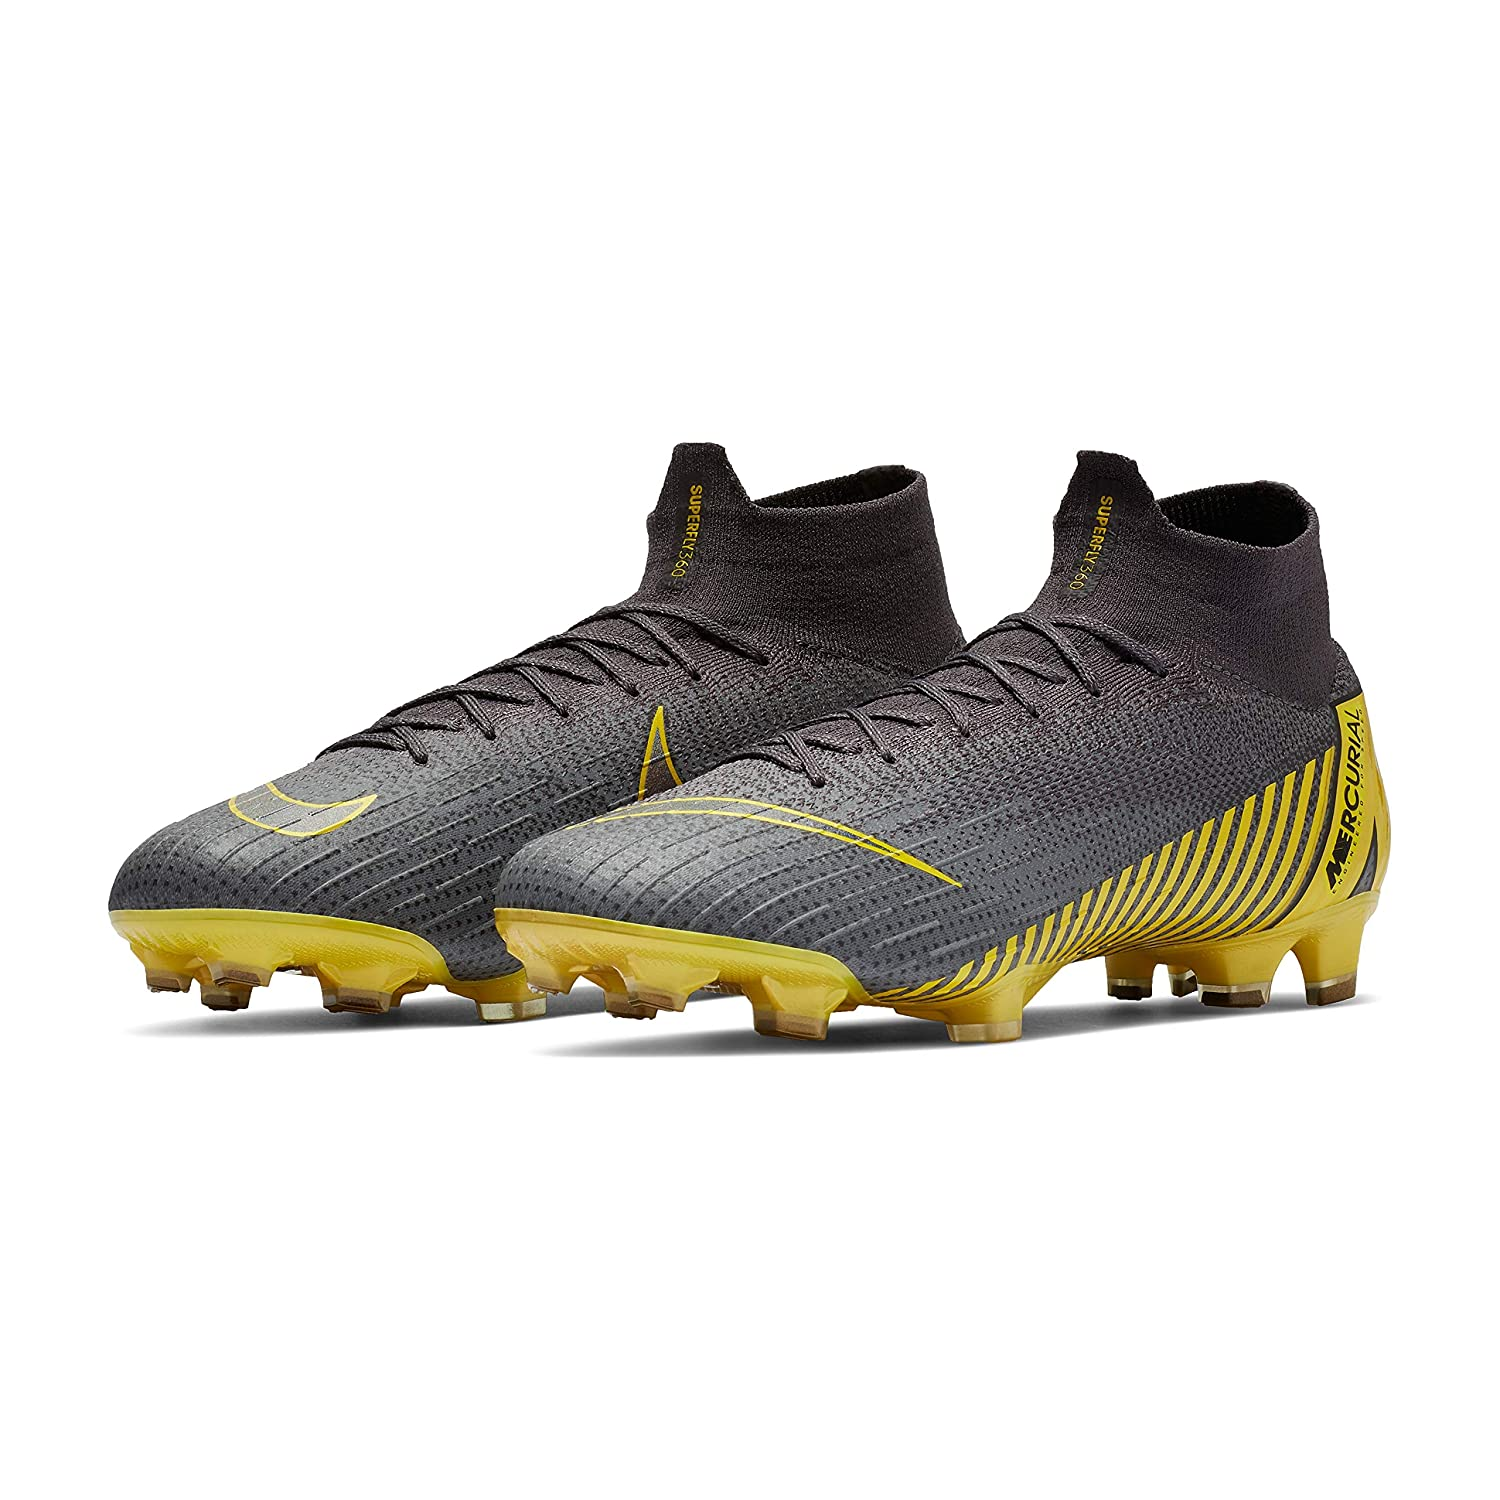 separation shoes d7173 210e2 Nike Unisex Adults Mercurial Superfly 6 Elite FG Soccer Cleats